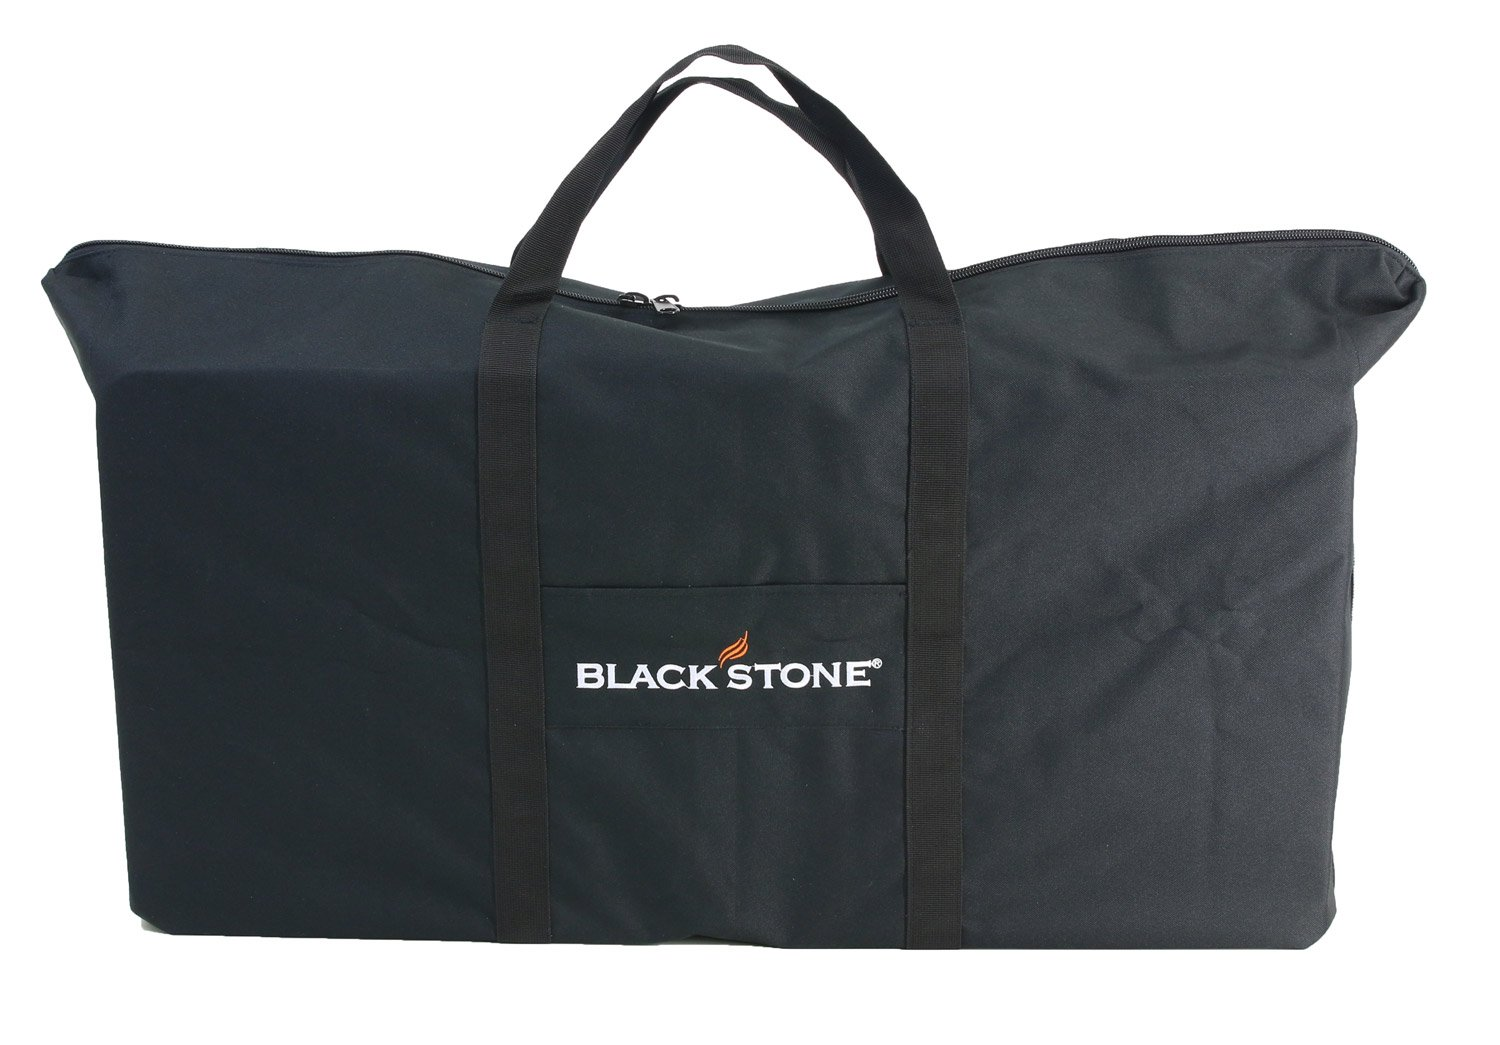 Blackstone Grill/Griddle Carry Bag, For 36-Inch Griddle Top or Grill Top 1131